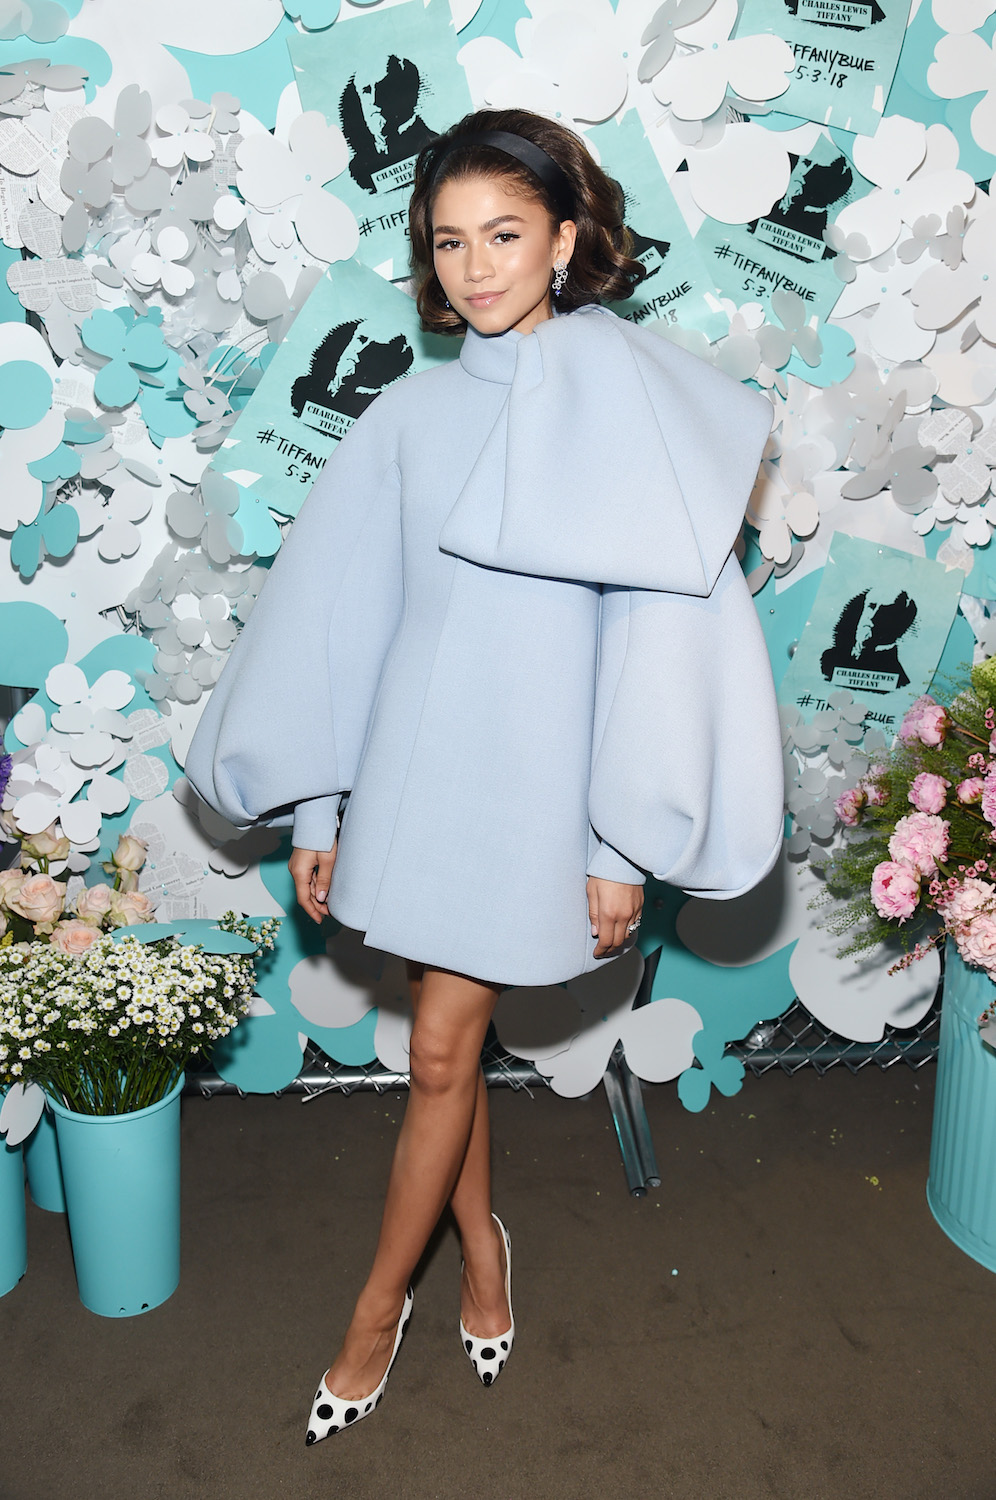 NEW YORK, NY - MAY 03: Zendaya attends the Tiffany & Co. Paper Flowers event and Believe In Dreams campaign launch on May 3, 2018 in New York City. (Photo by Jamie McCarthy/Getty Images for Tiffany & Co.)